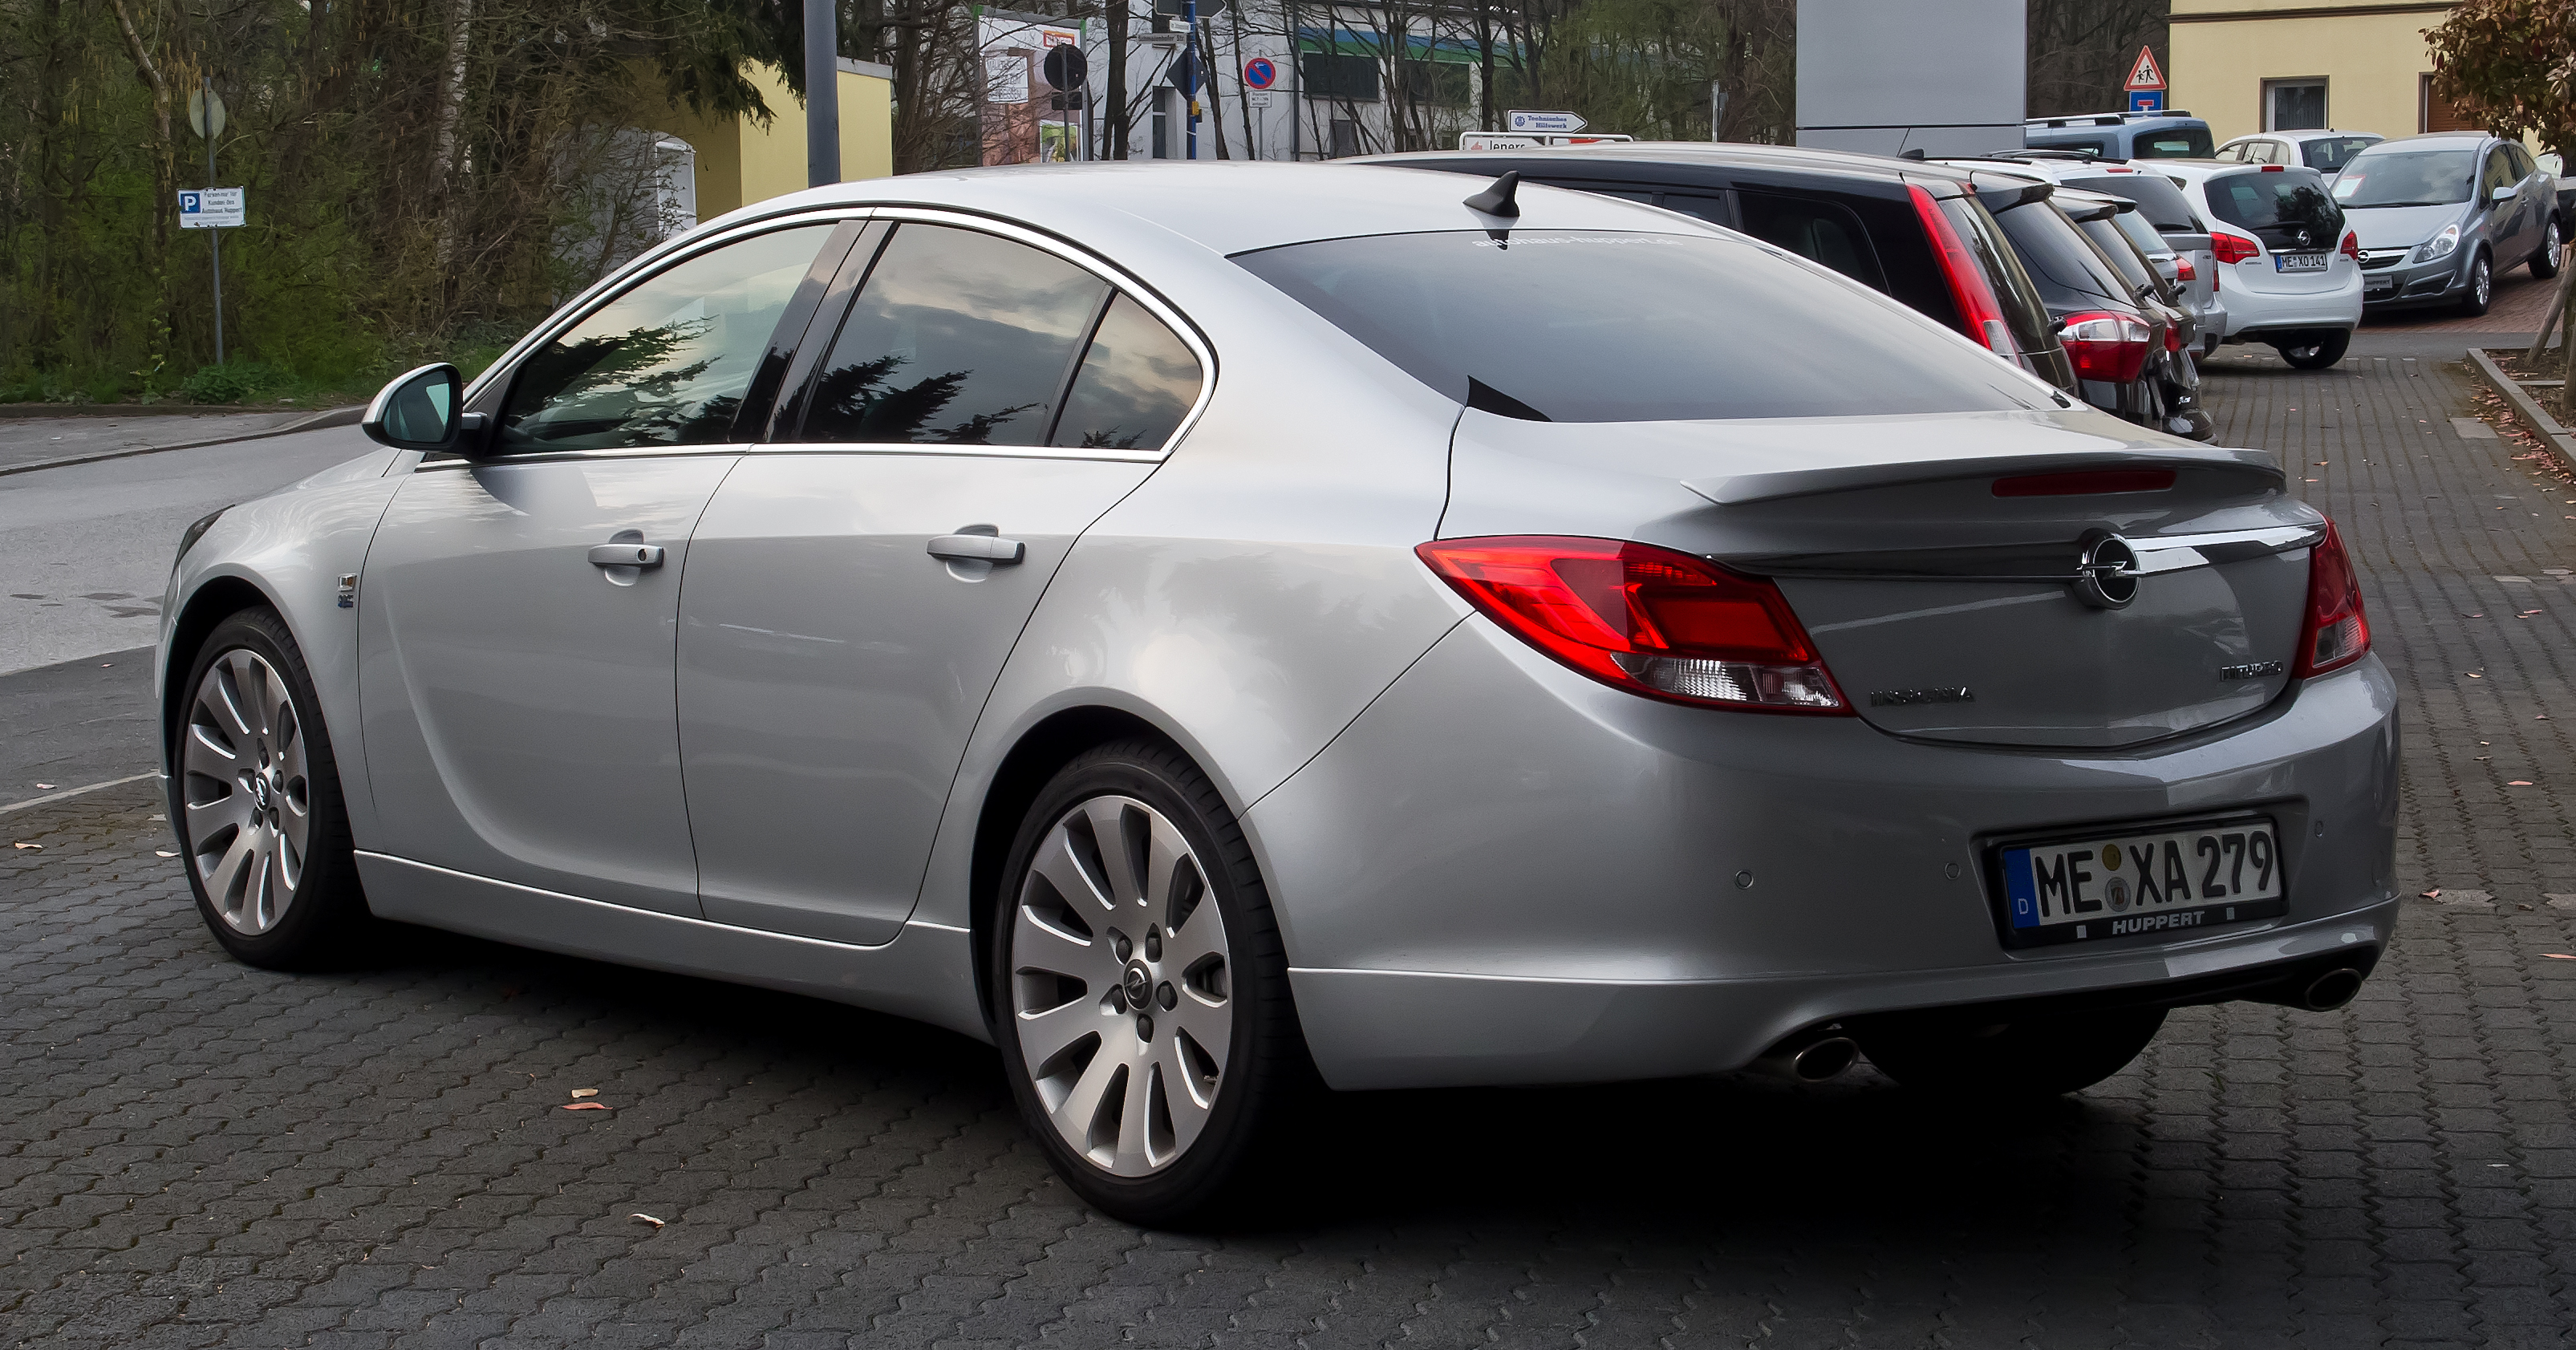 Opel Insignia   pictures, information and specs - Auto-Database.com